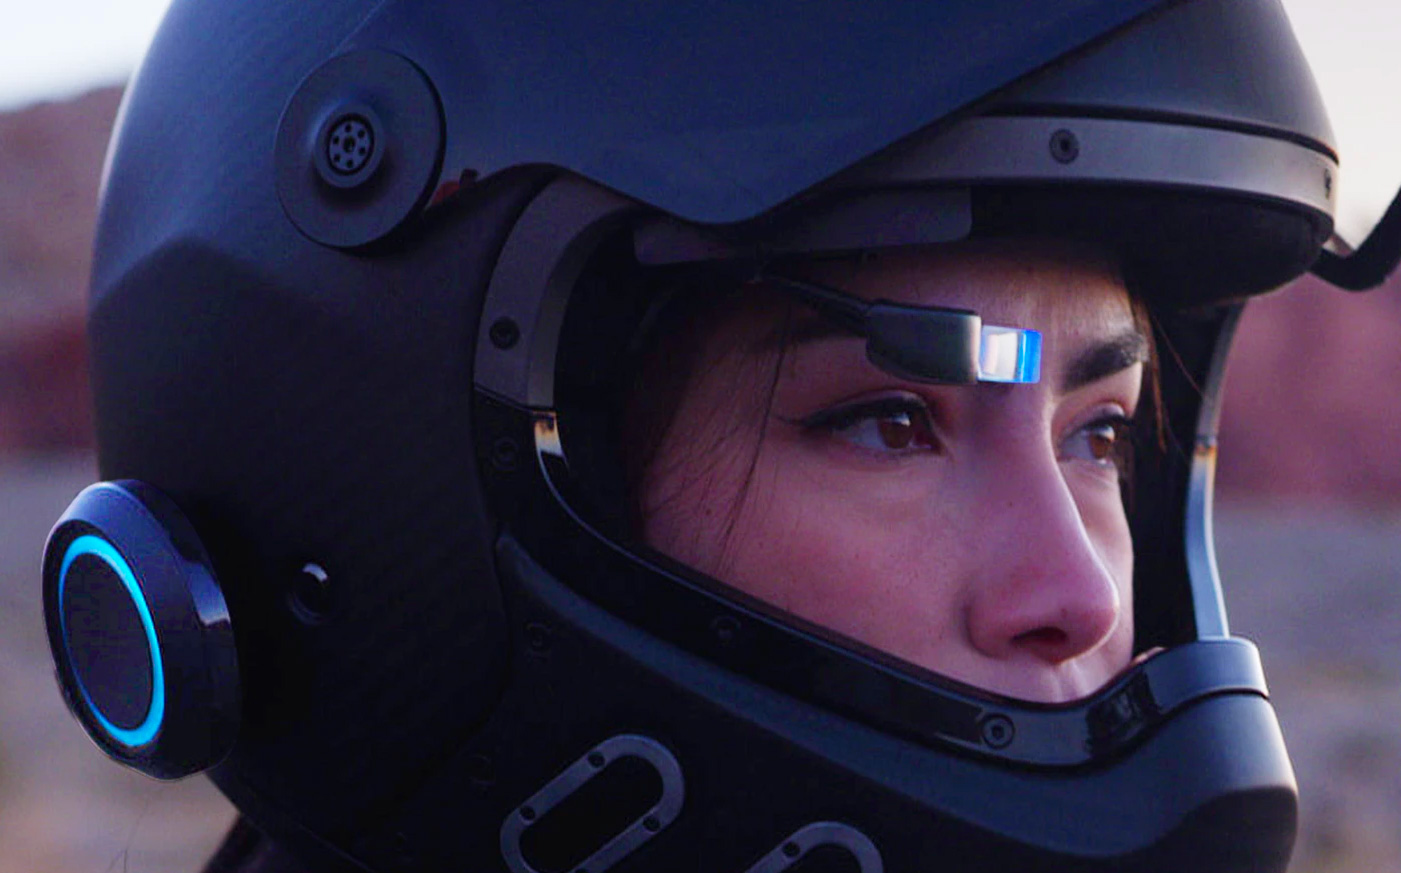 EyeRide HUD Makes Your Helmet Smarter at werd.com